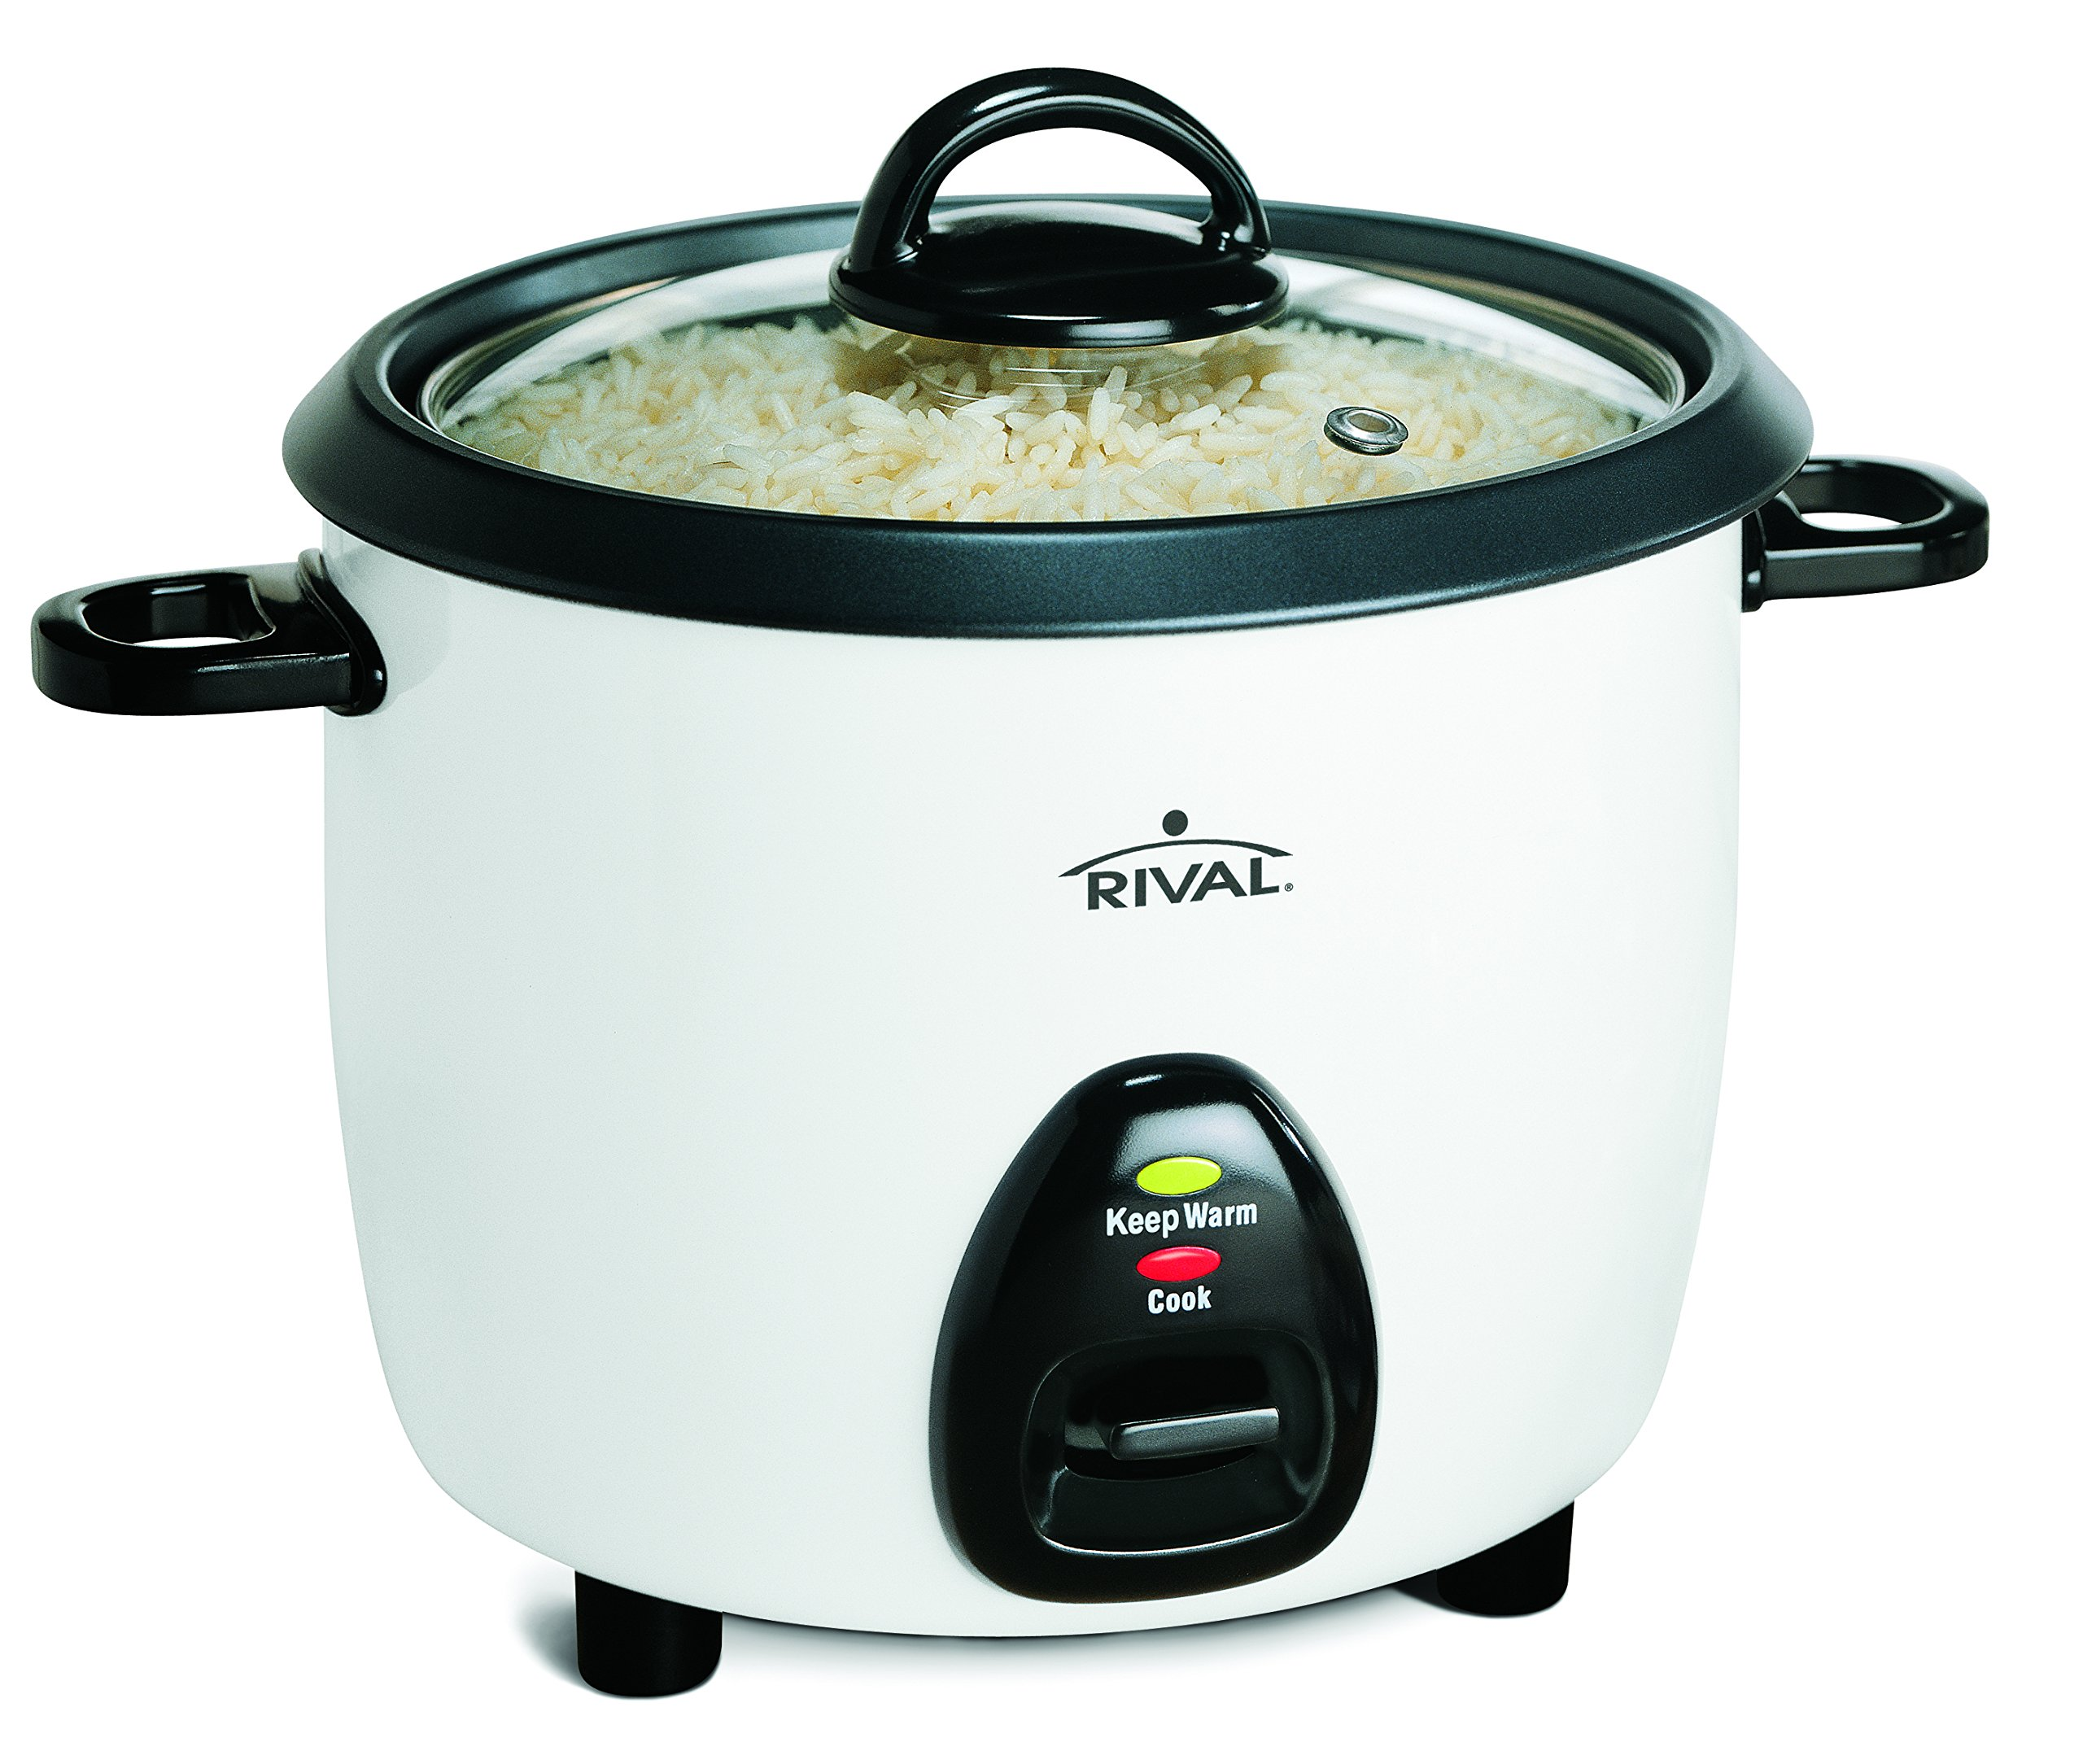 Rival 10-Cup Rice Cooker with Steamer Basket, White/Black (RC101) by Rival (Image #1)